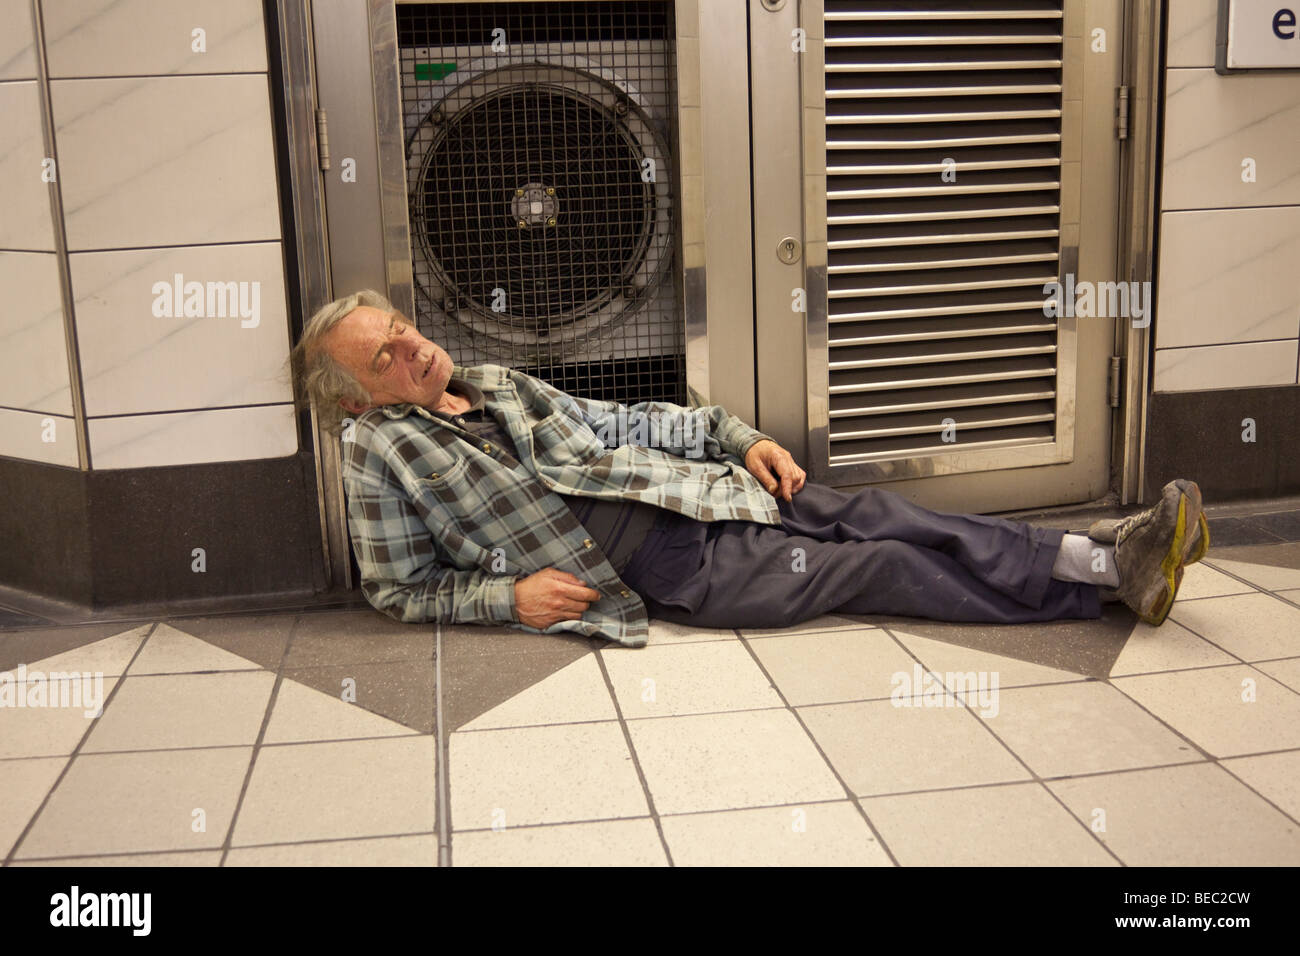 man asleep in London Bank underground station at night - Stock Image